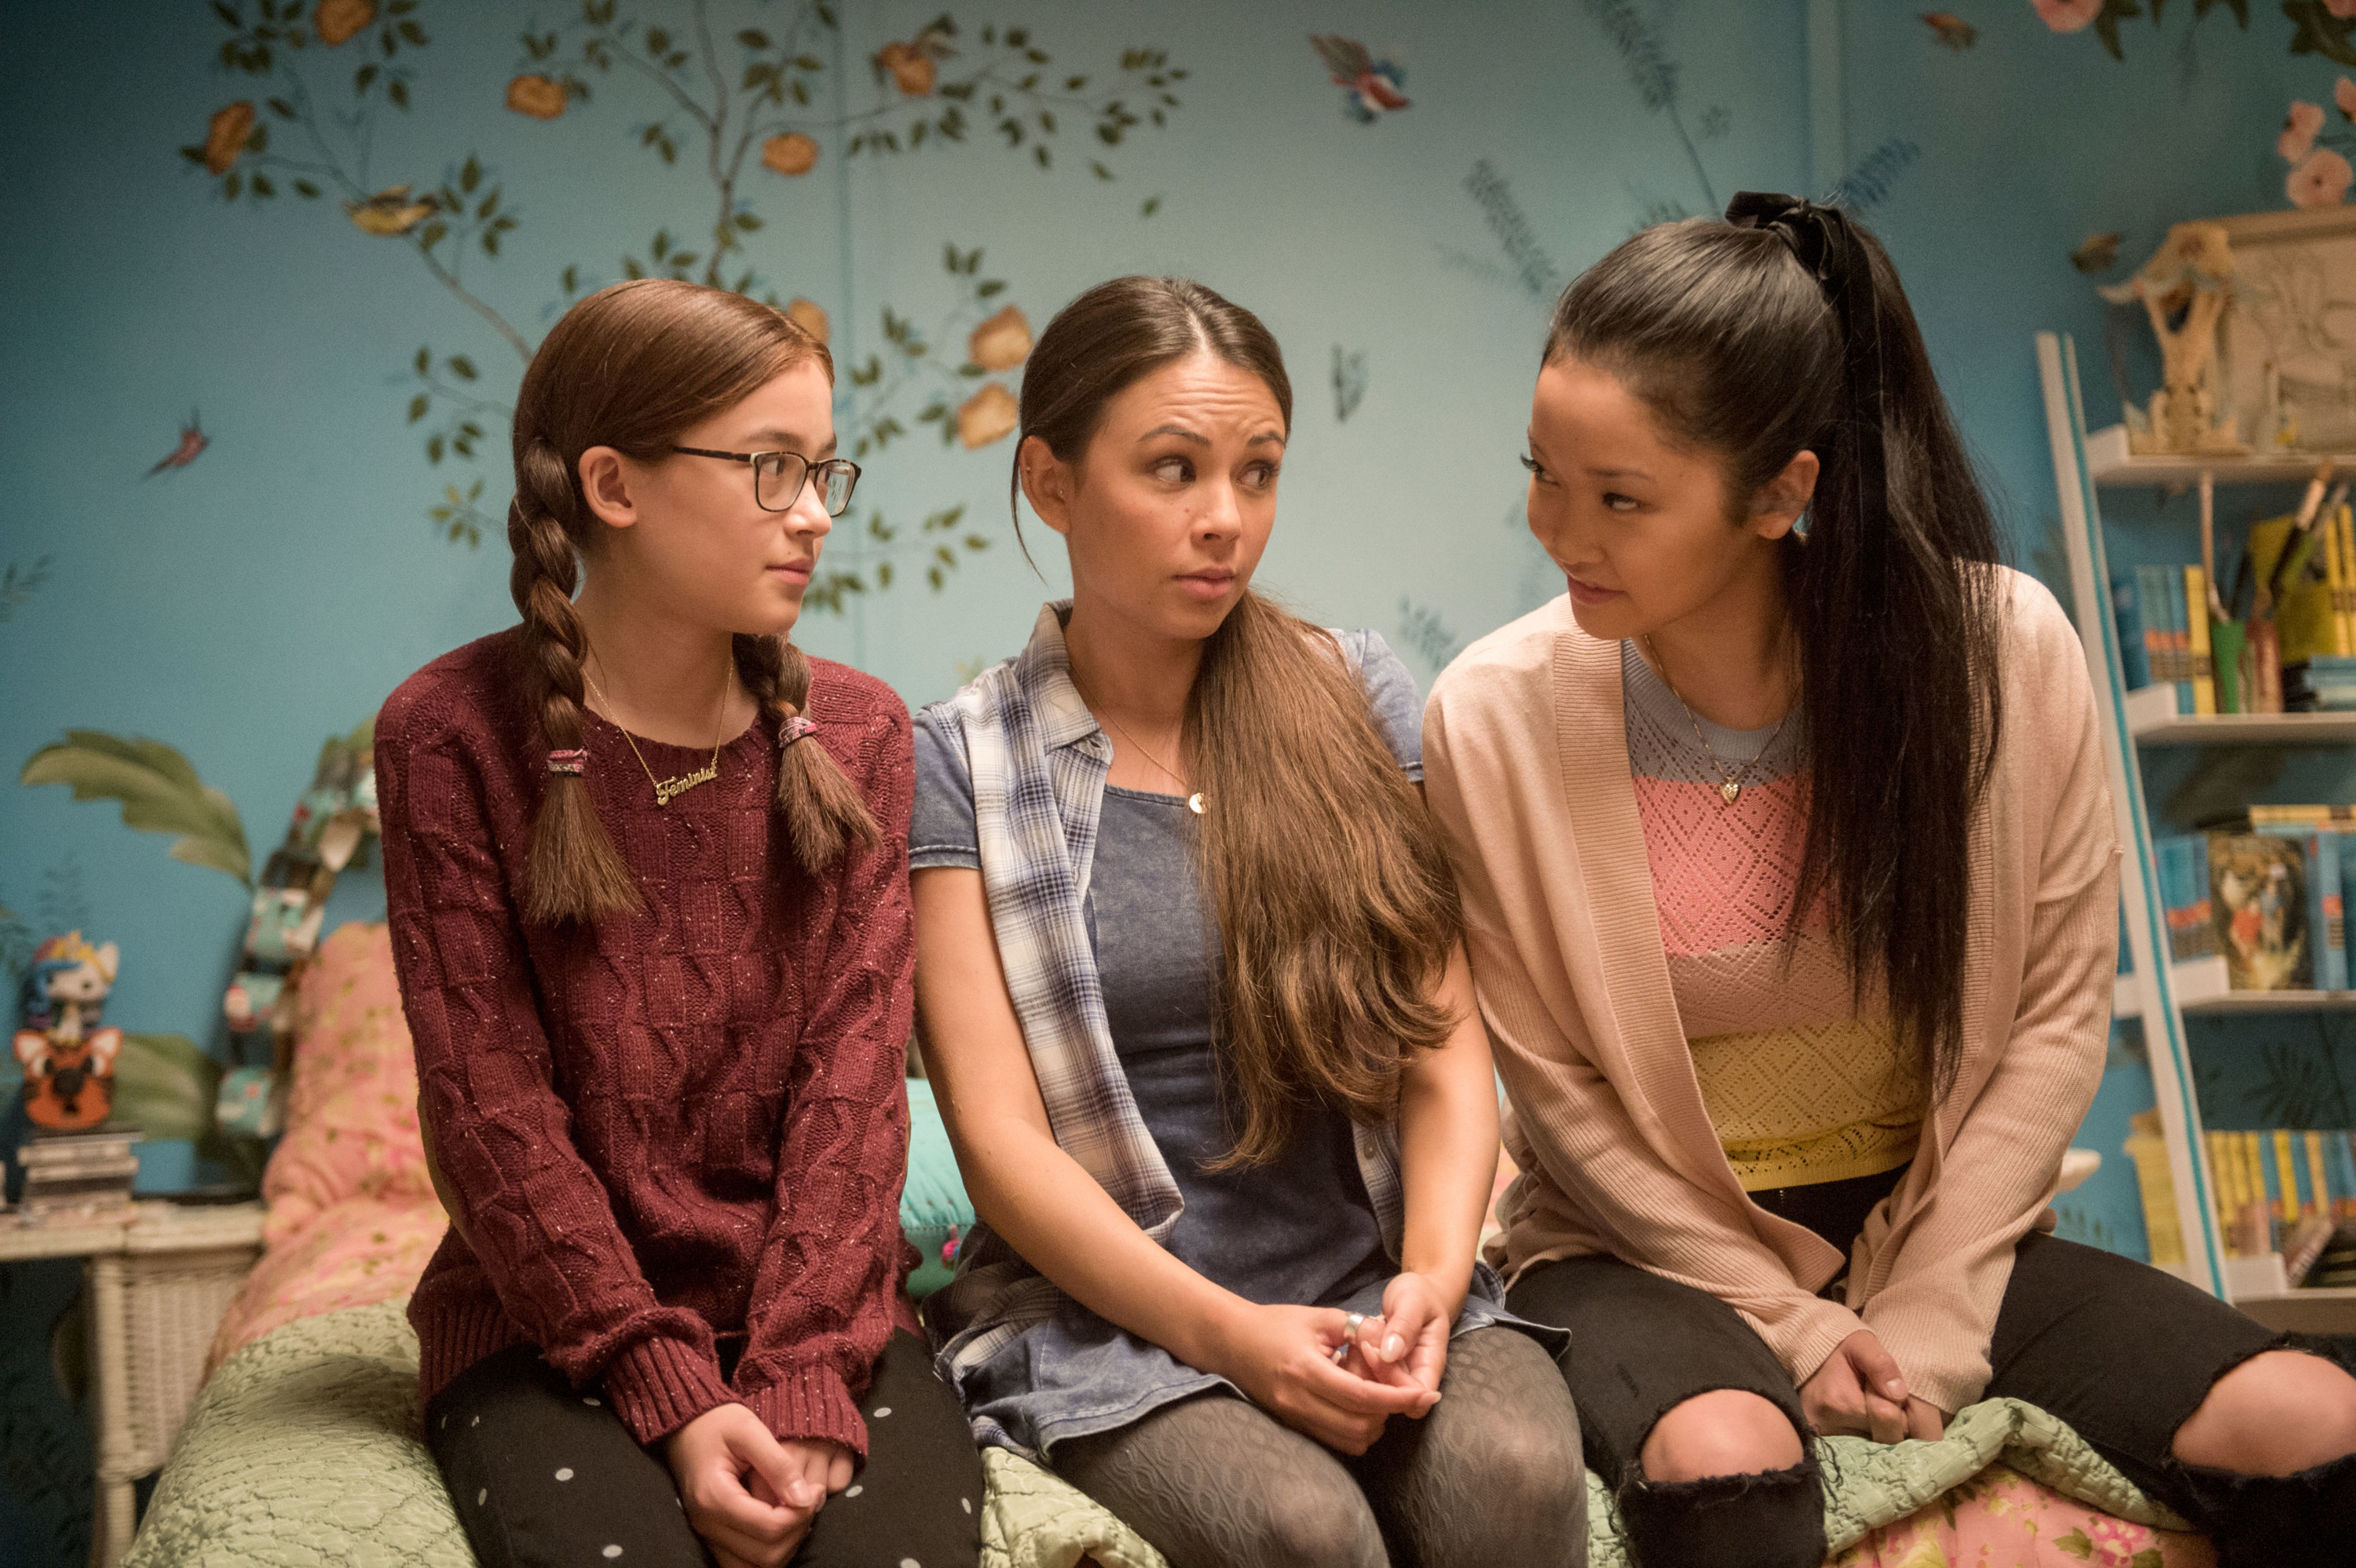 Anna Cathcart, Janel Parrish, and Lana Condor sit on a bed in To All the Boys I've Loved Before